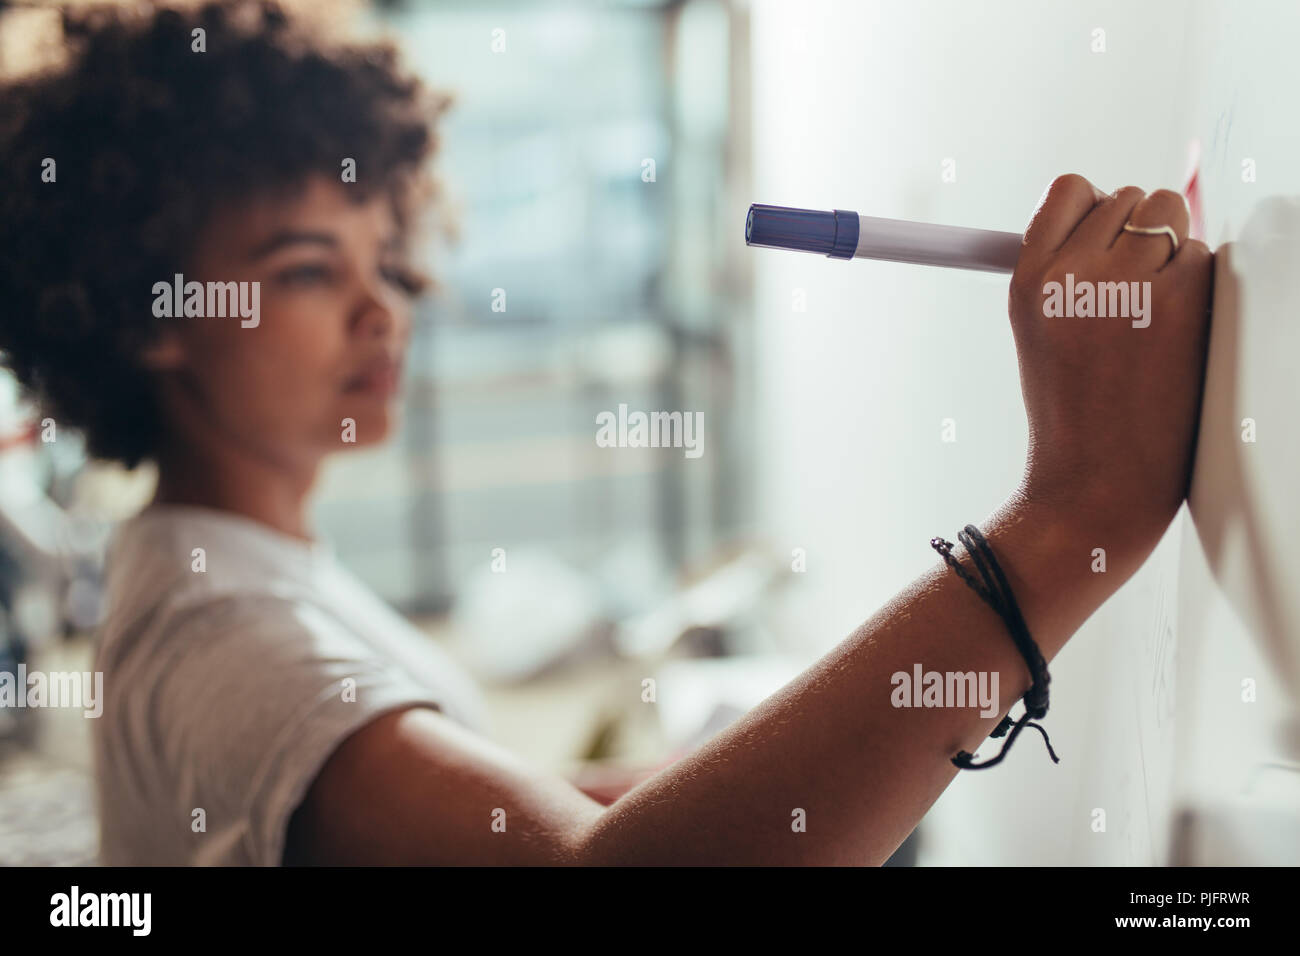 Close up of woman writing on white board during a business project meeting. Focus on female hands writing with a marker pen on presentation board. - Stock Image